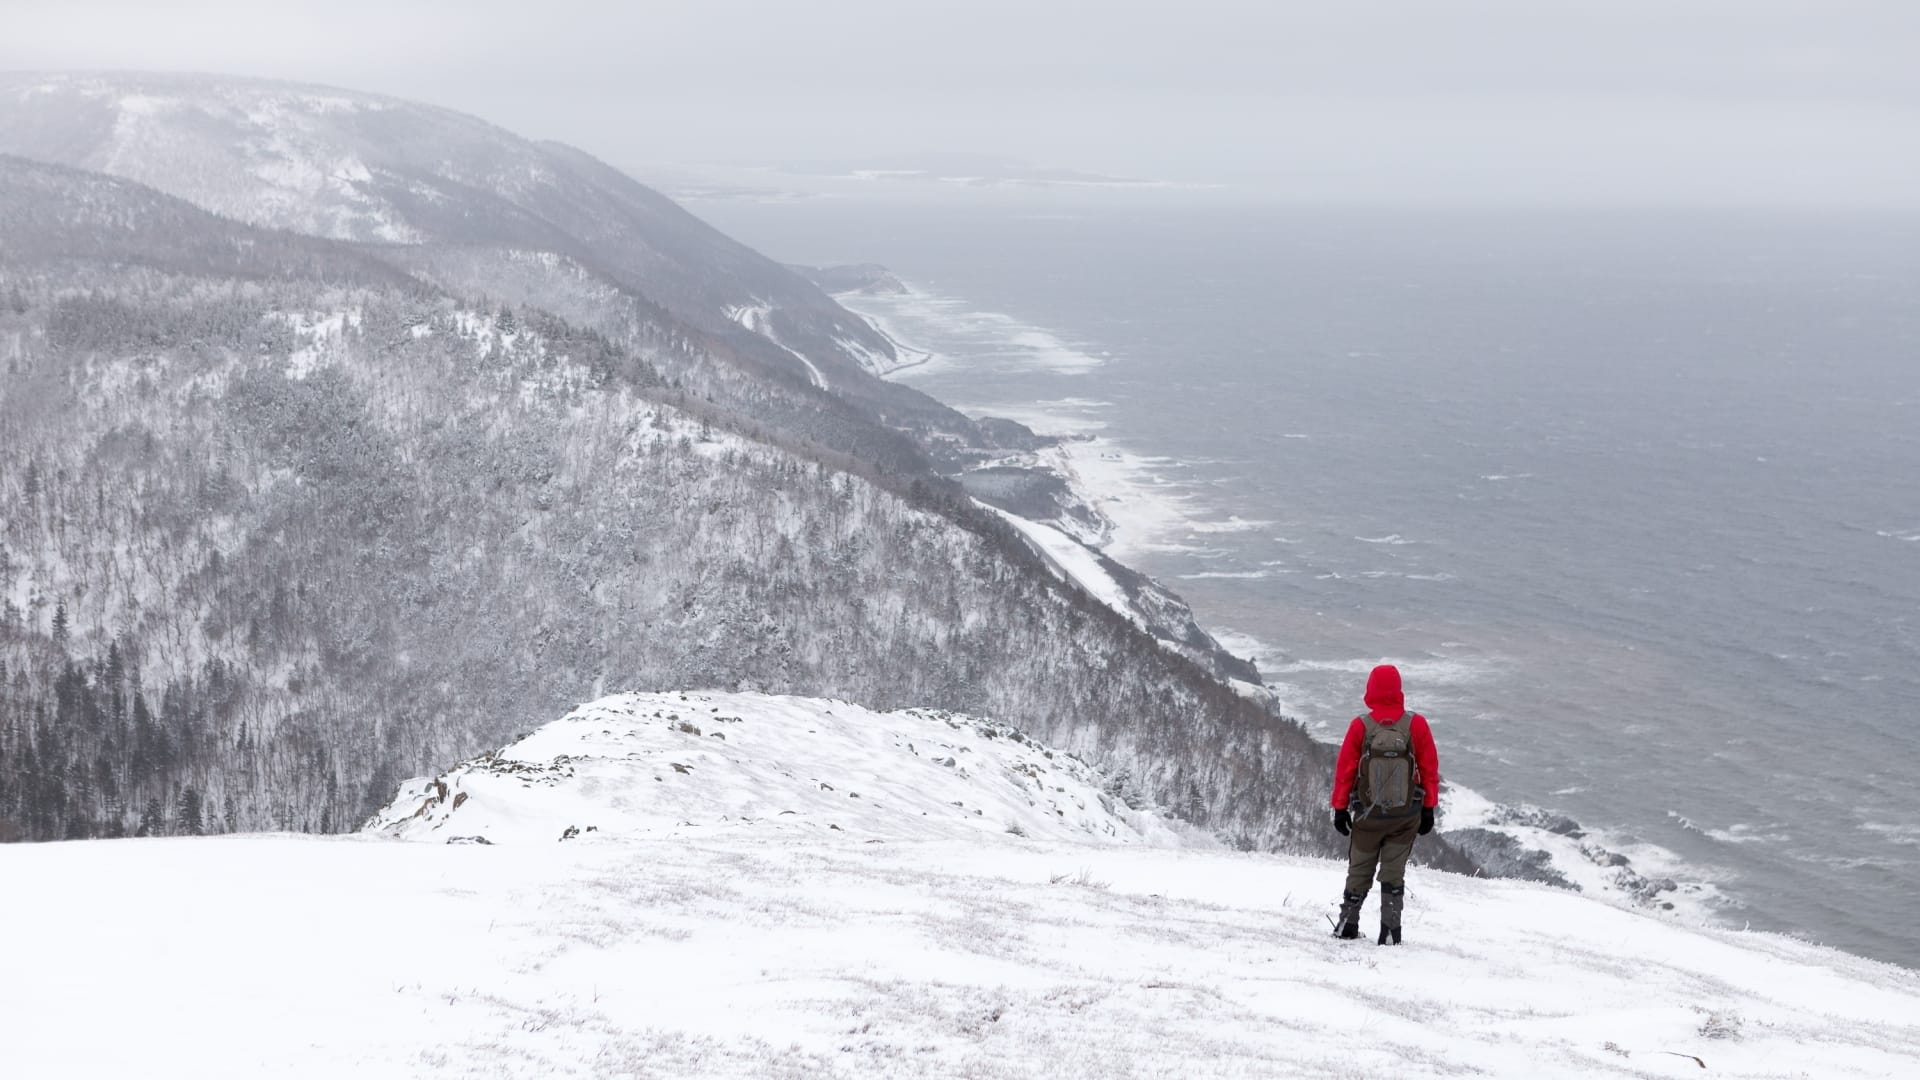 A hiker stands on a snowy hill overlooking the ocean